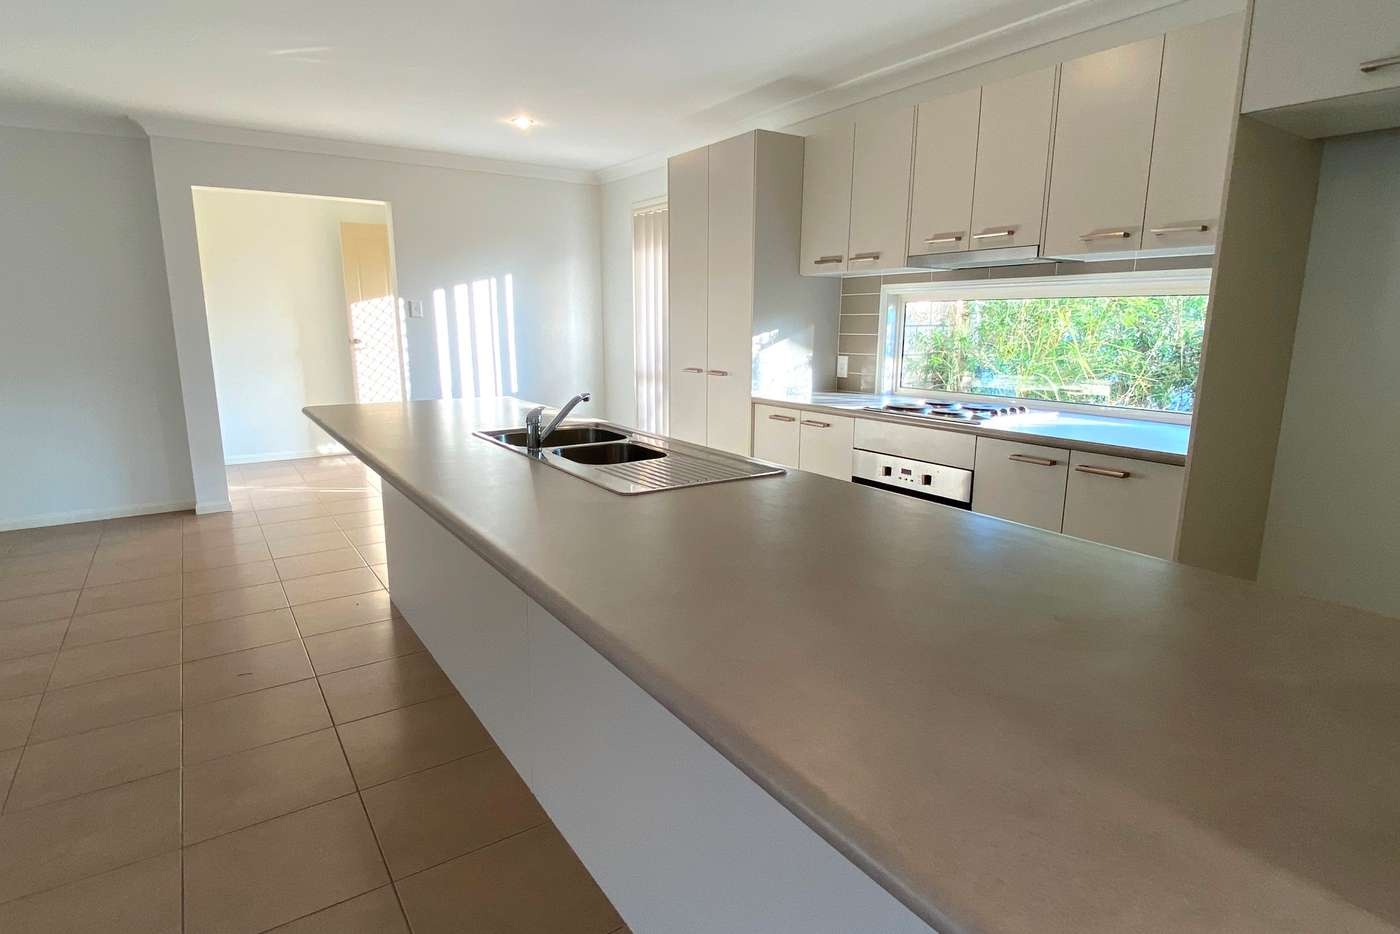 Seventh view of Homely house listing, 6 PRO HART CLOSE, Brassall QLD 4305